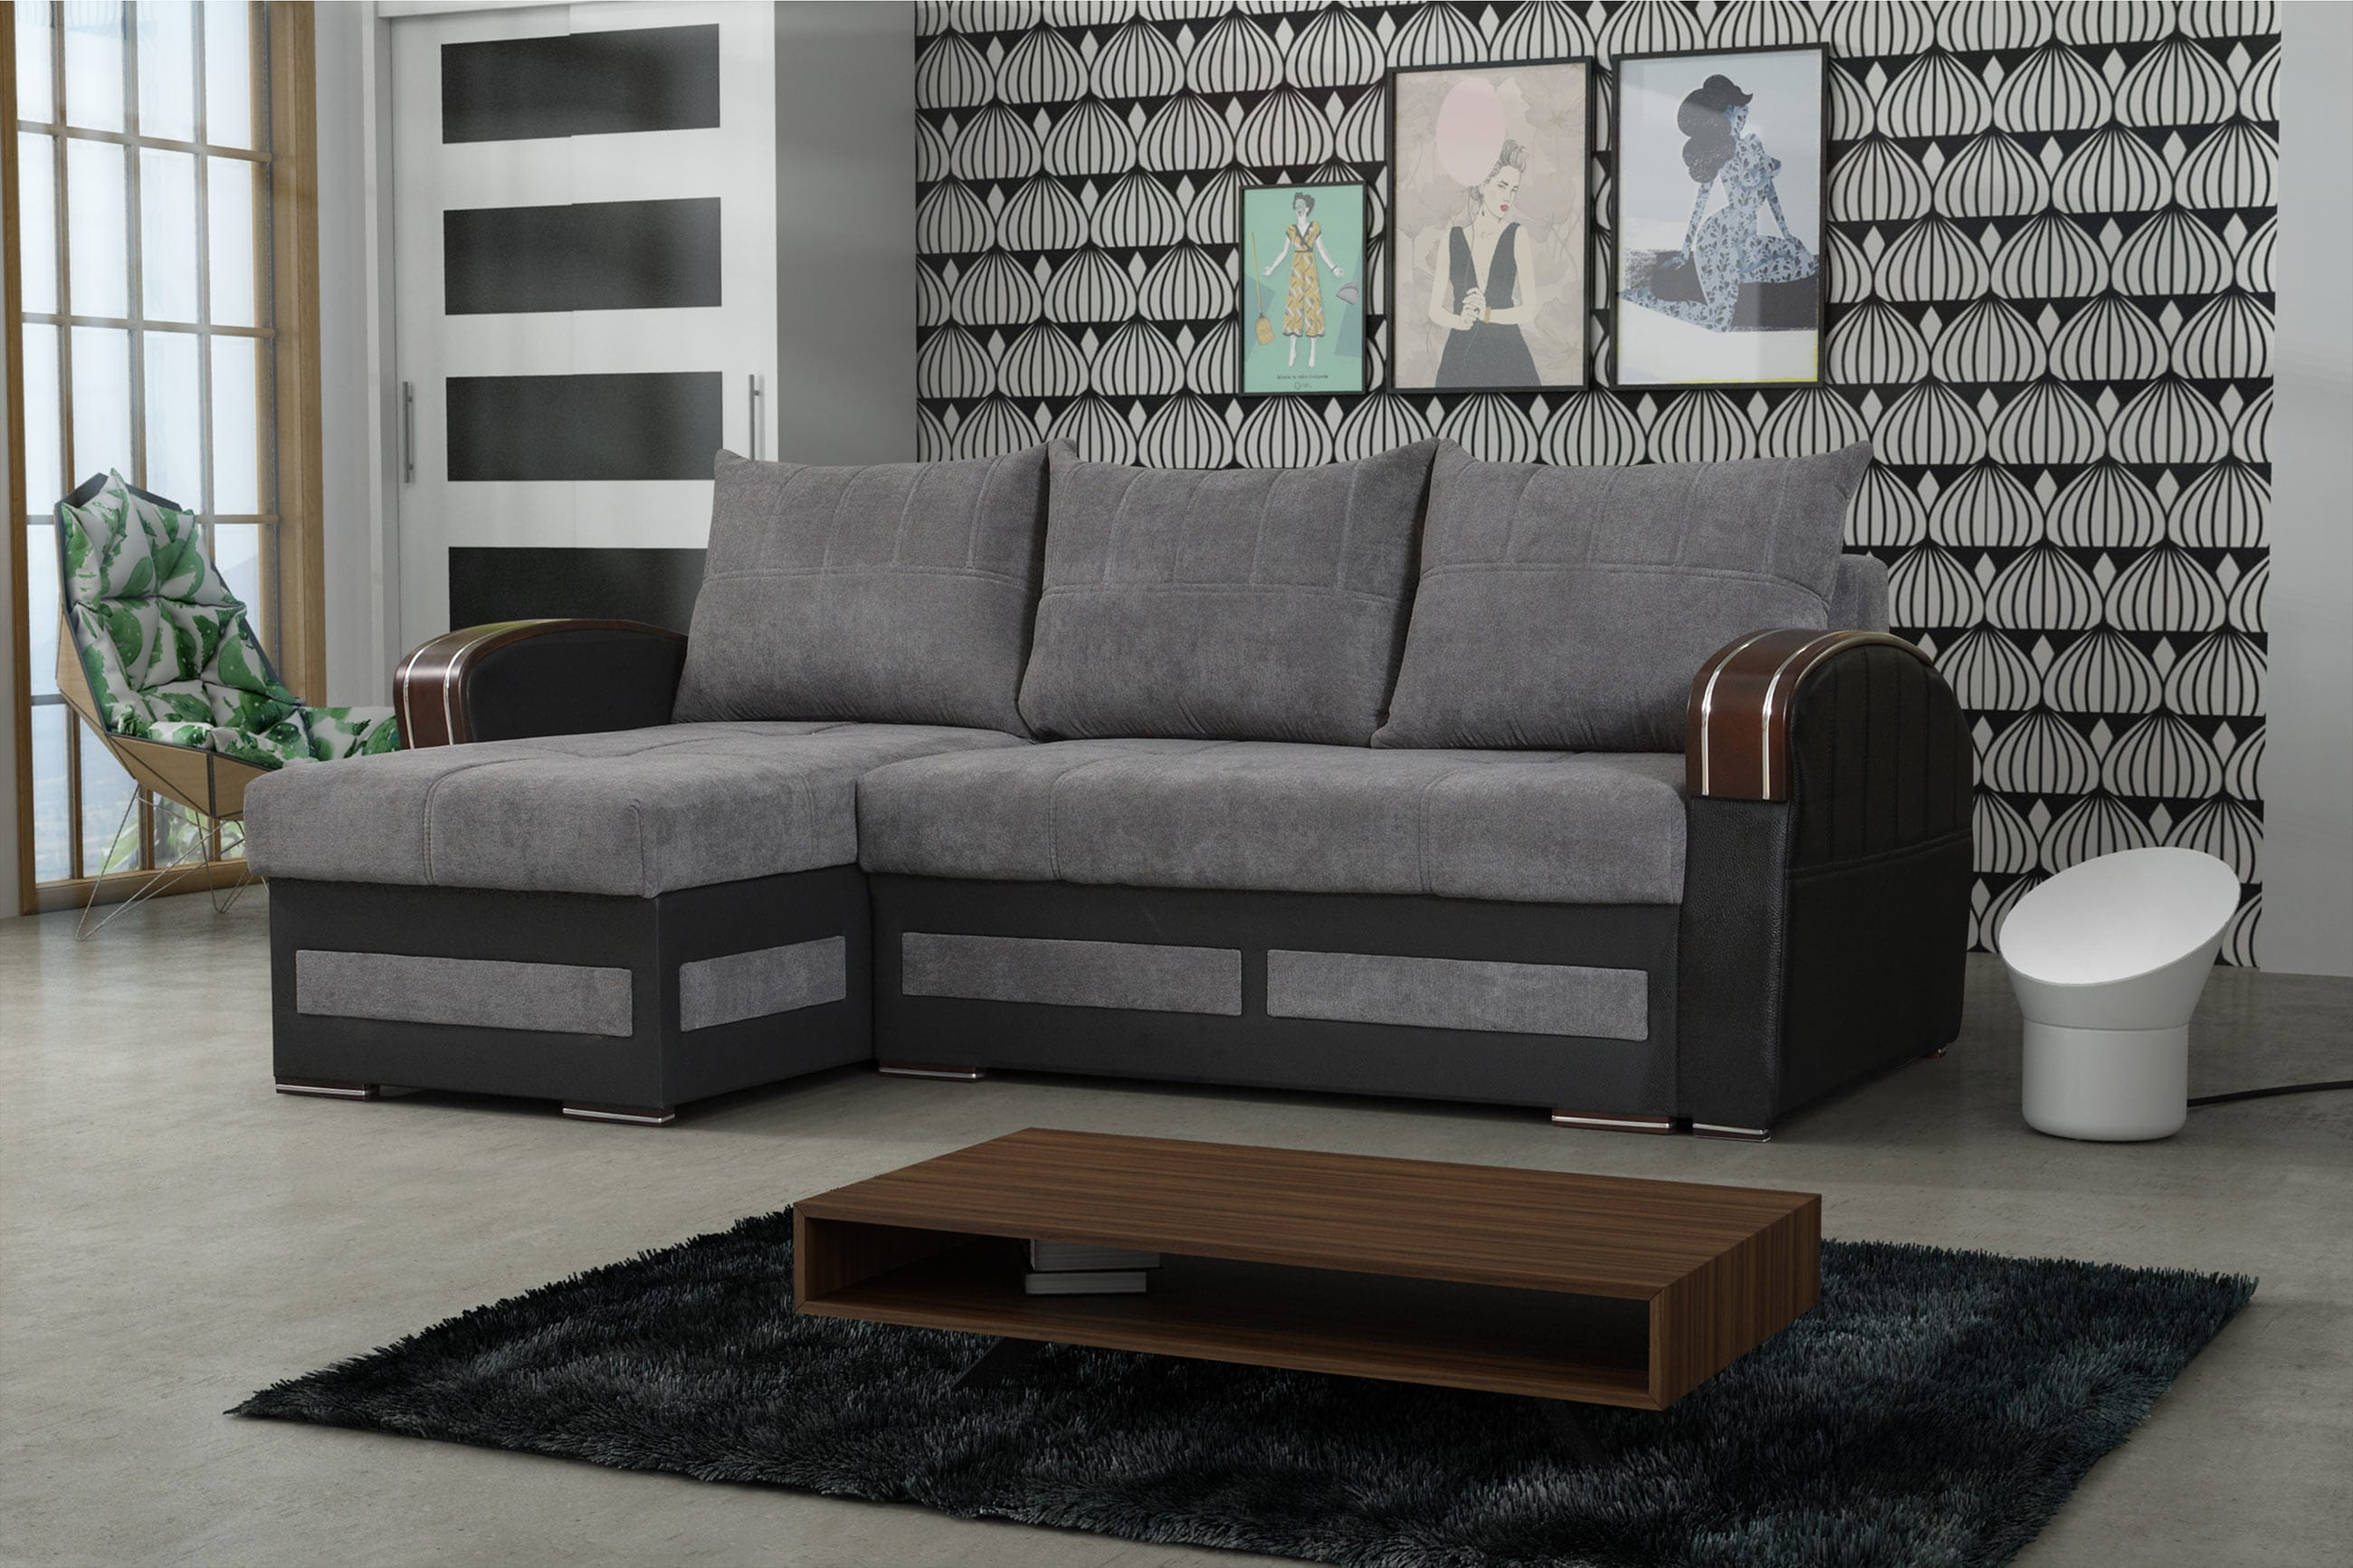 Super Tommy Gray Sectional Sofa Sleeper By Skyler Designs Gmtry Best Dining Table And Chair Ideas Images Gmtryco